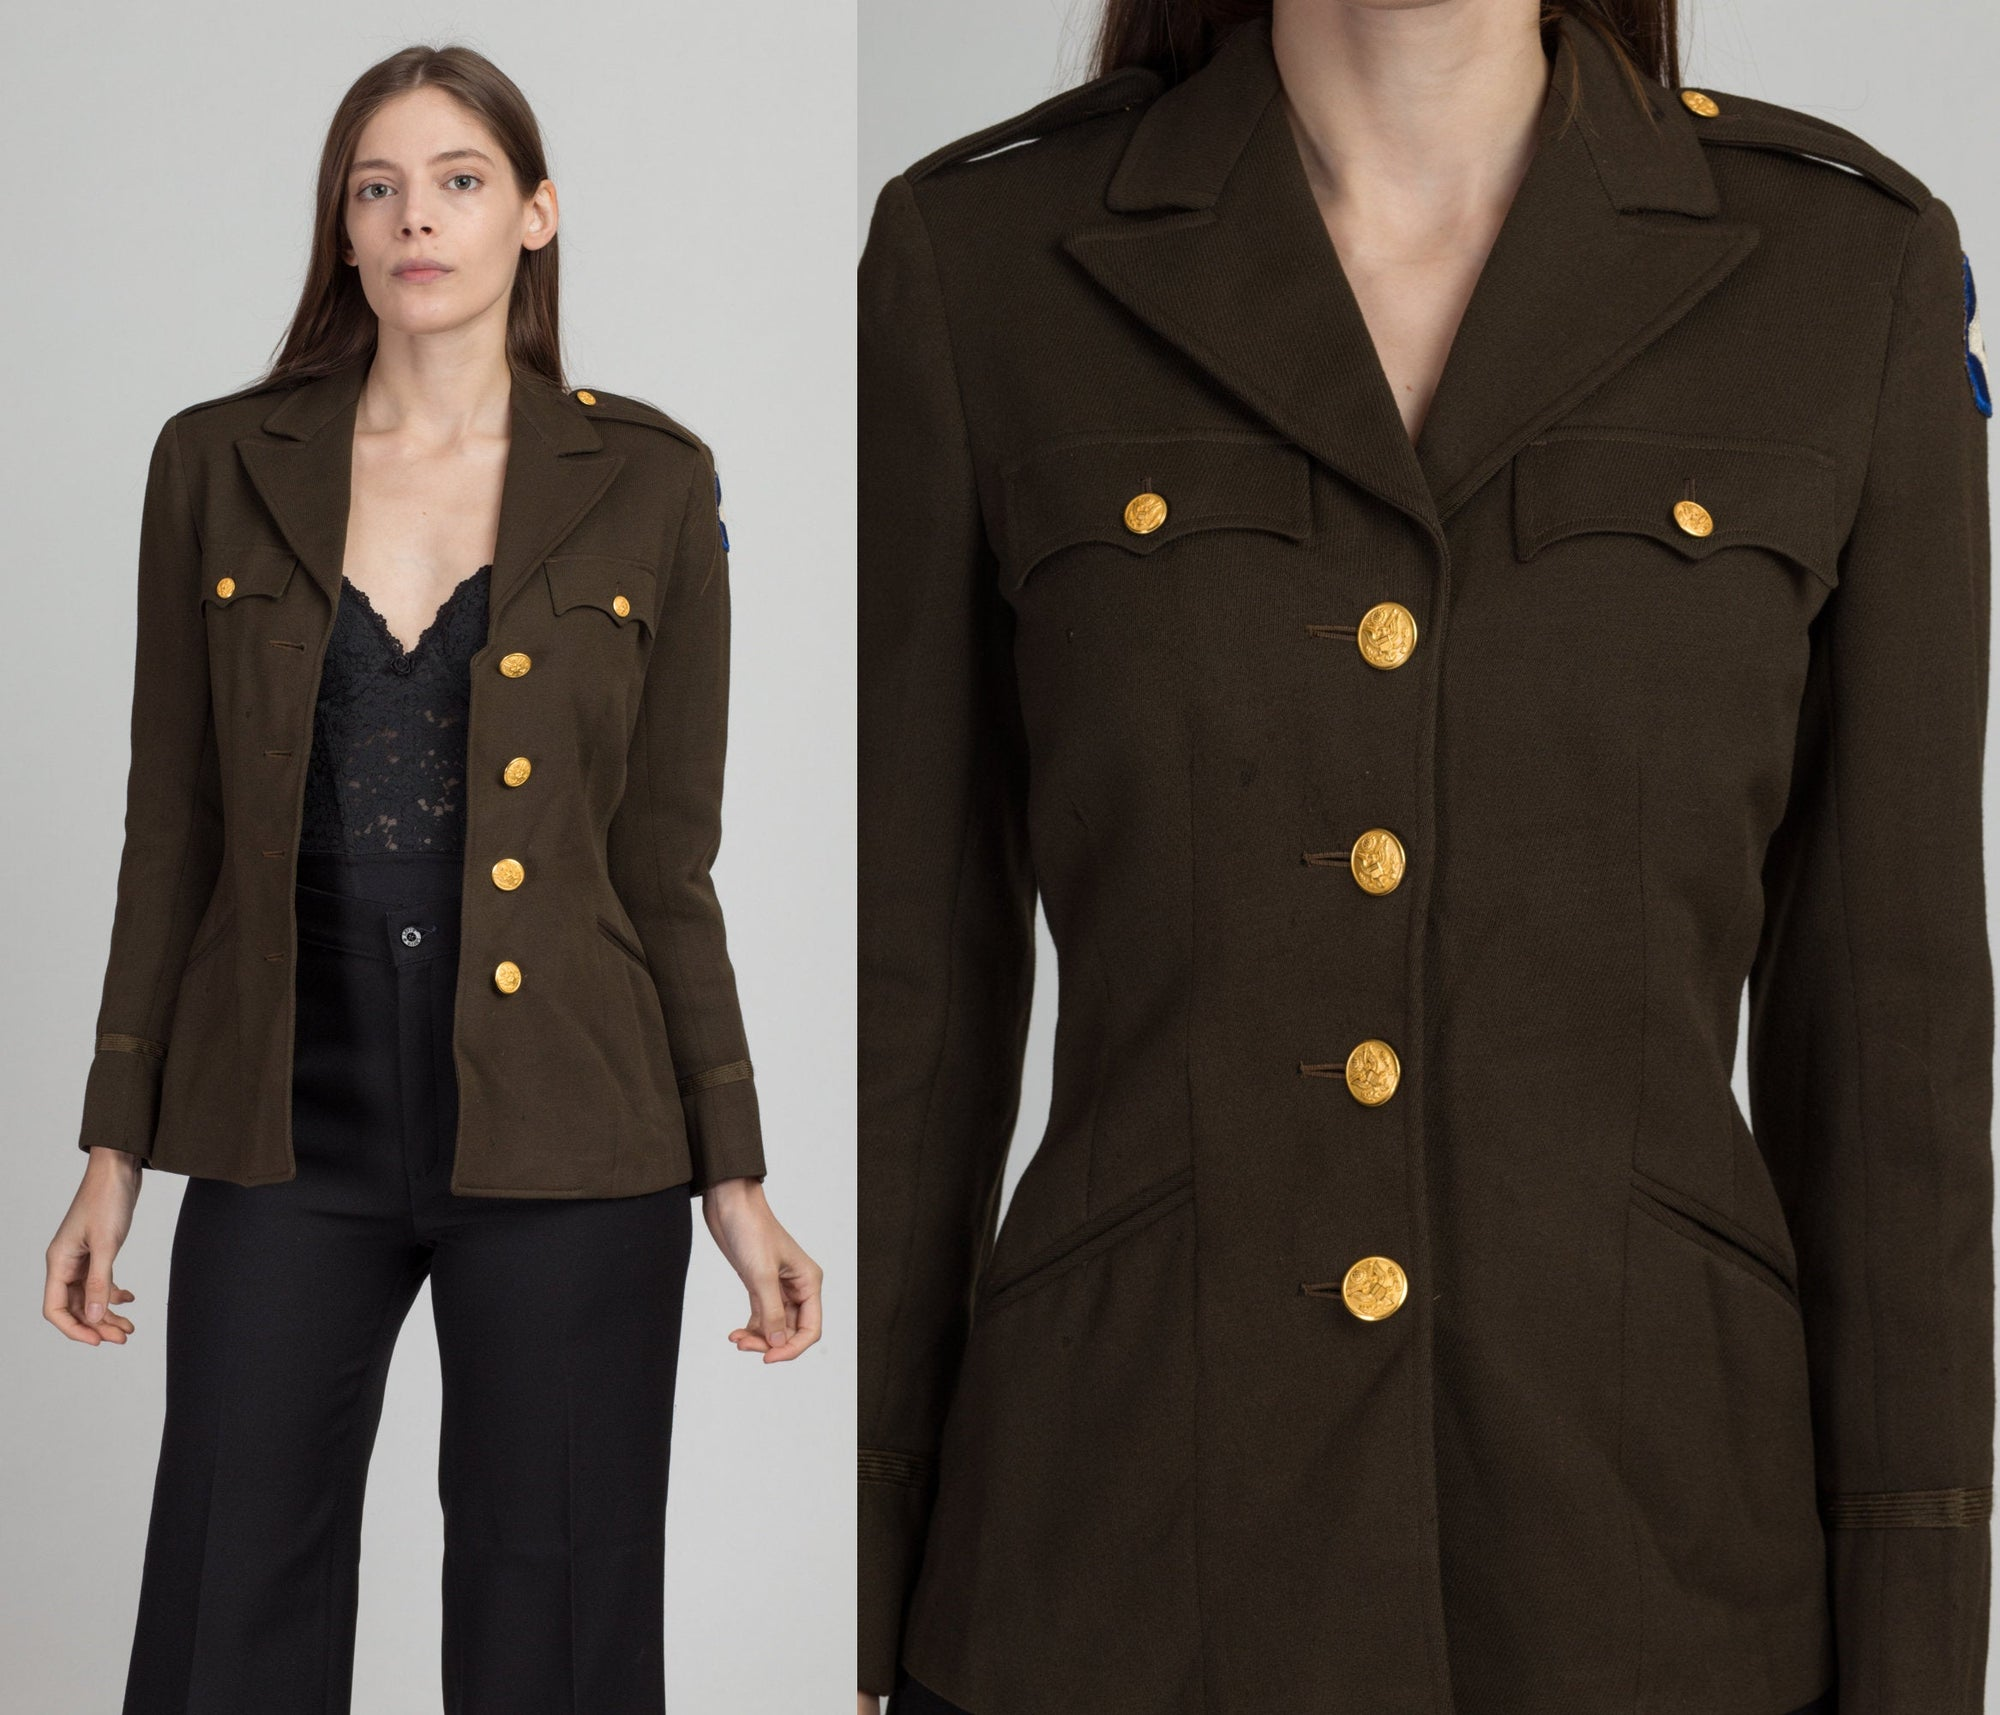 Vintage 1945 Military Blazer Jacket - Extra Small | 40s Olive Green Button Up Army Fitted Wool Coat